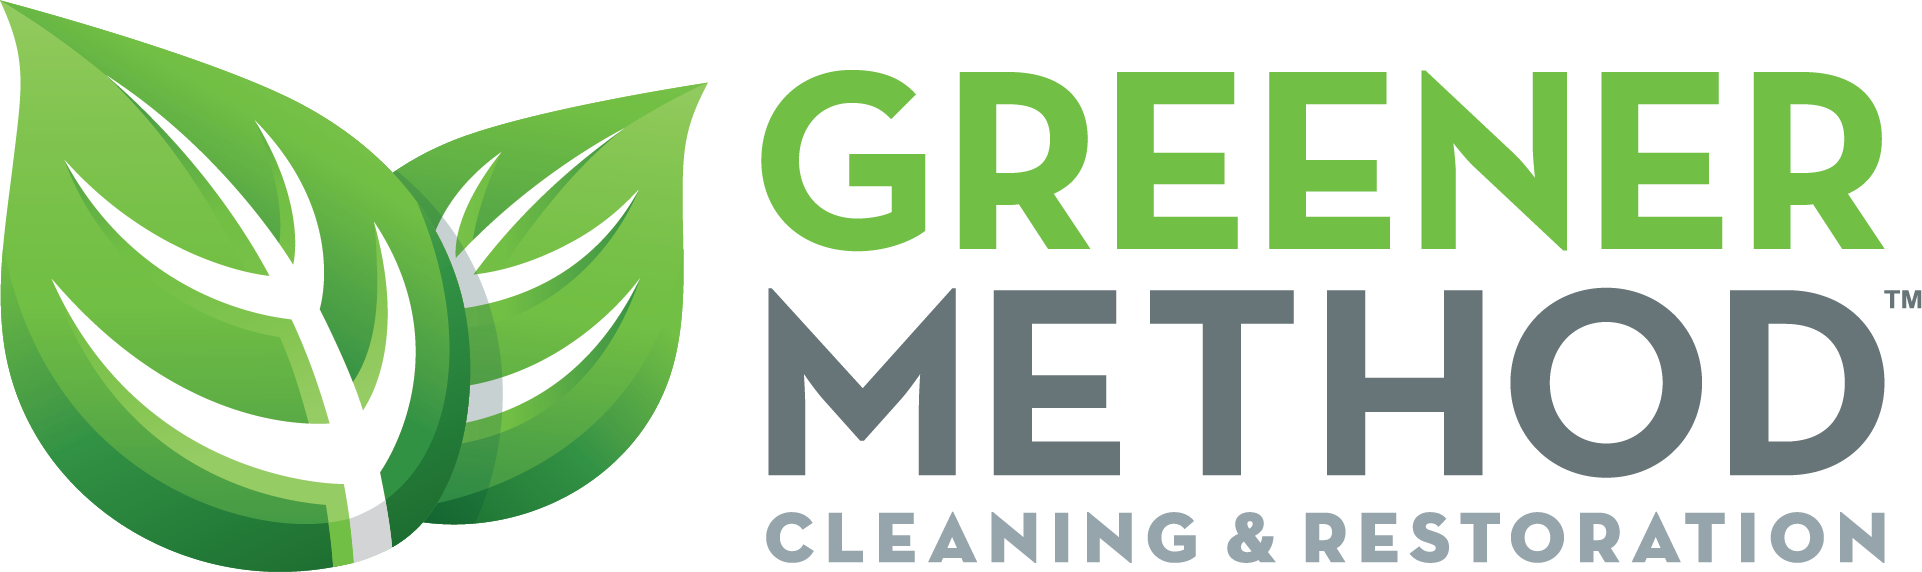 Greener Method